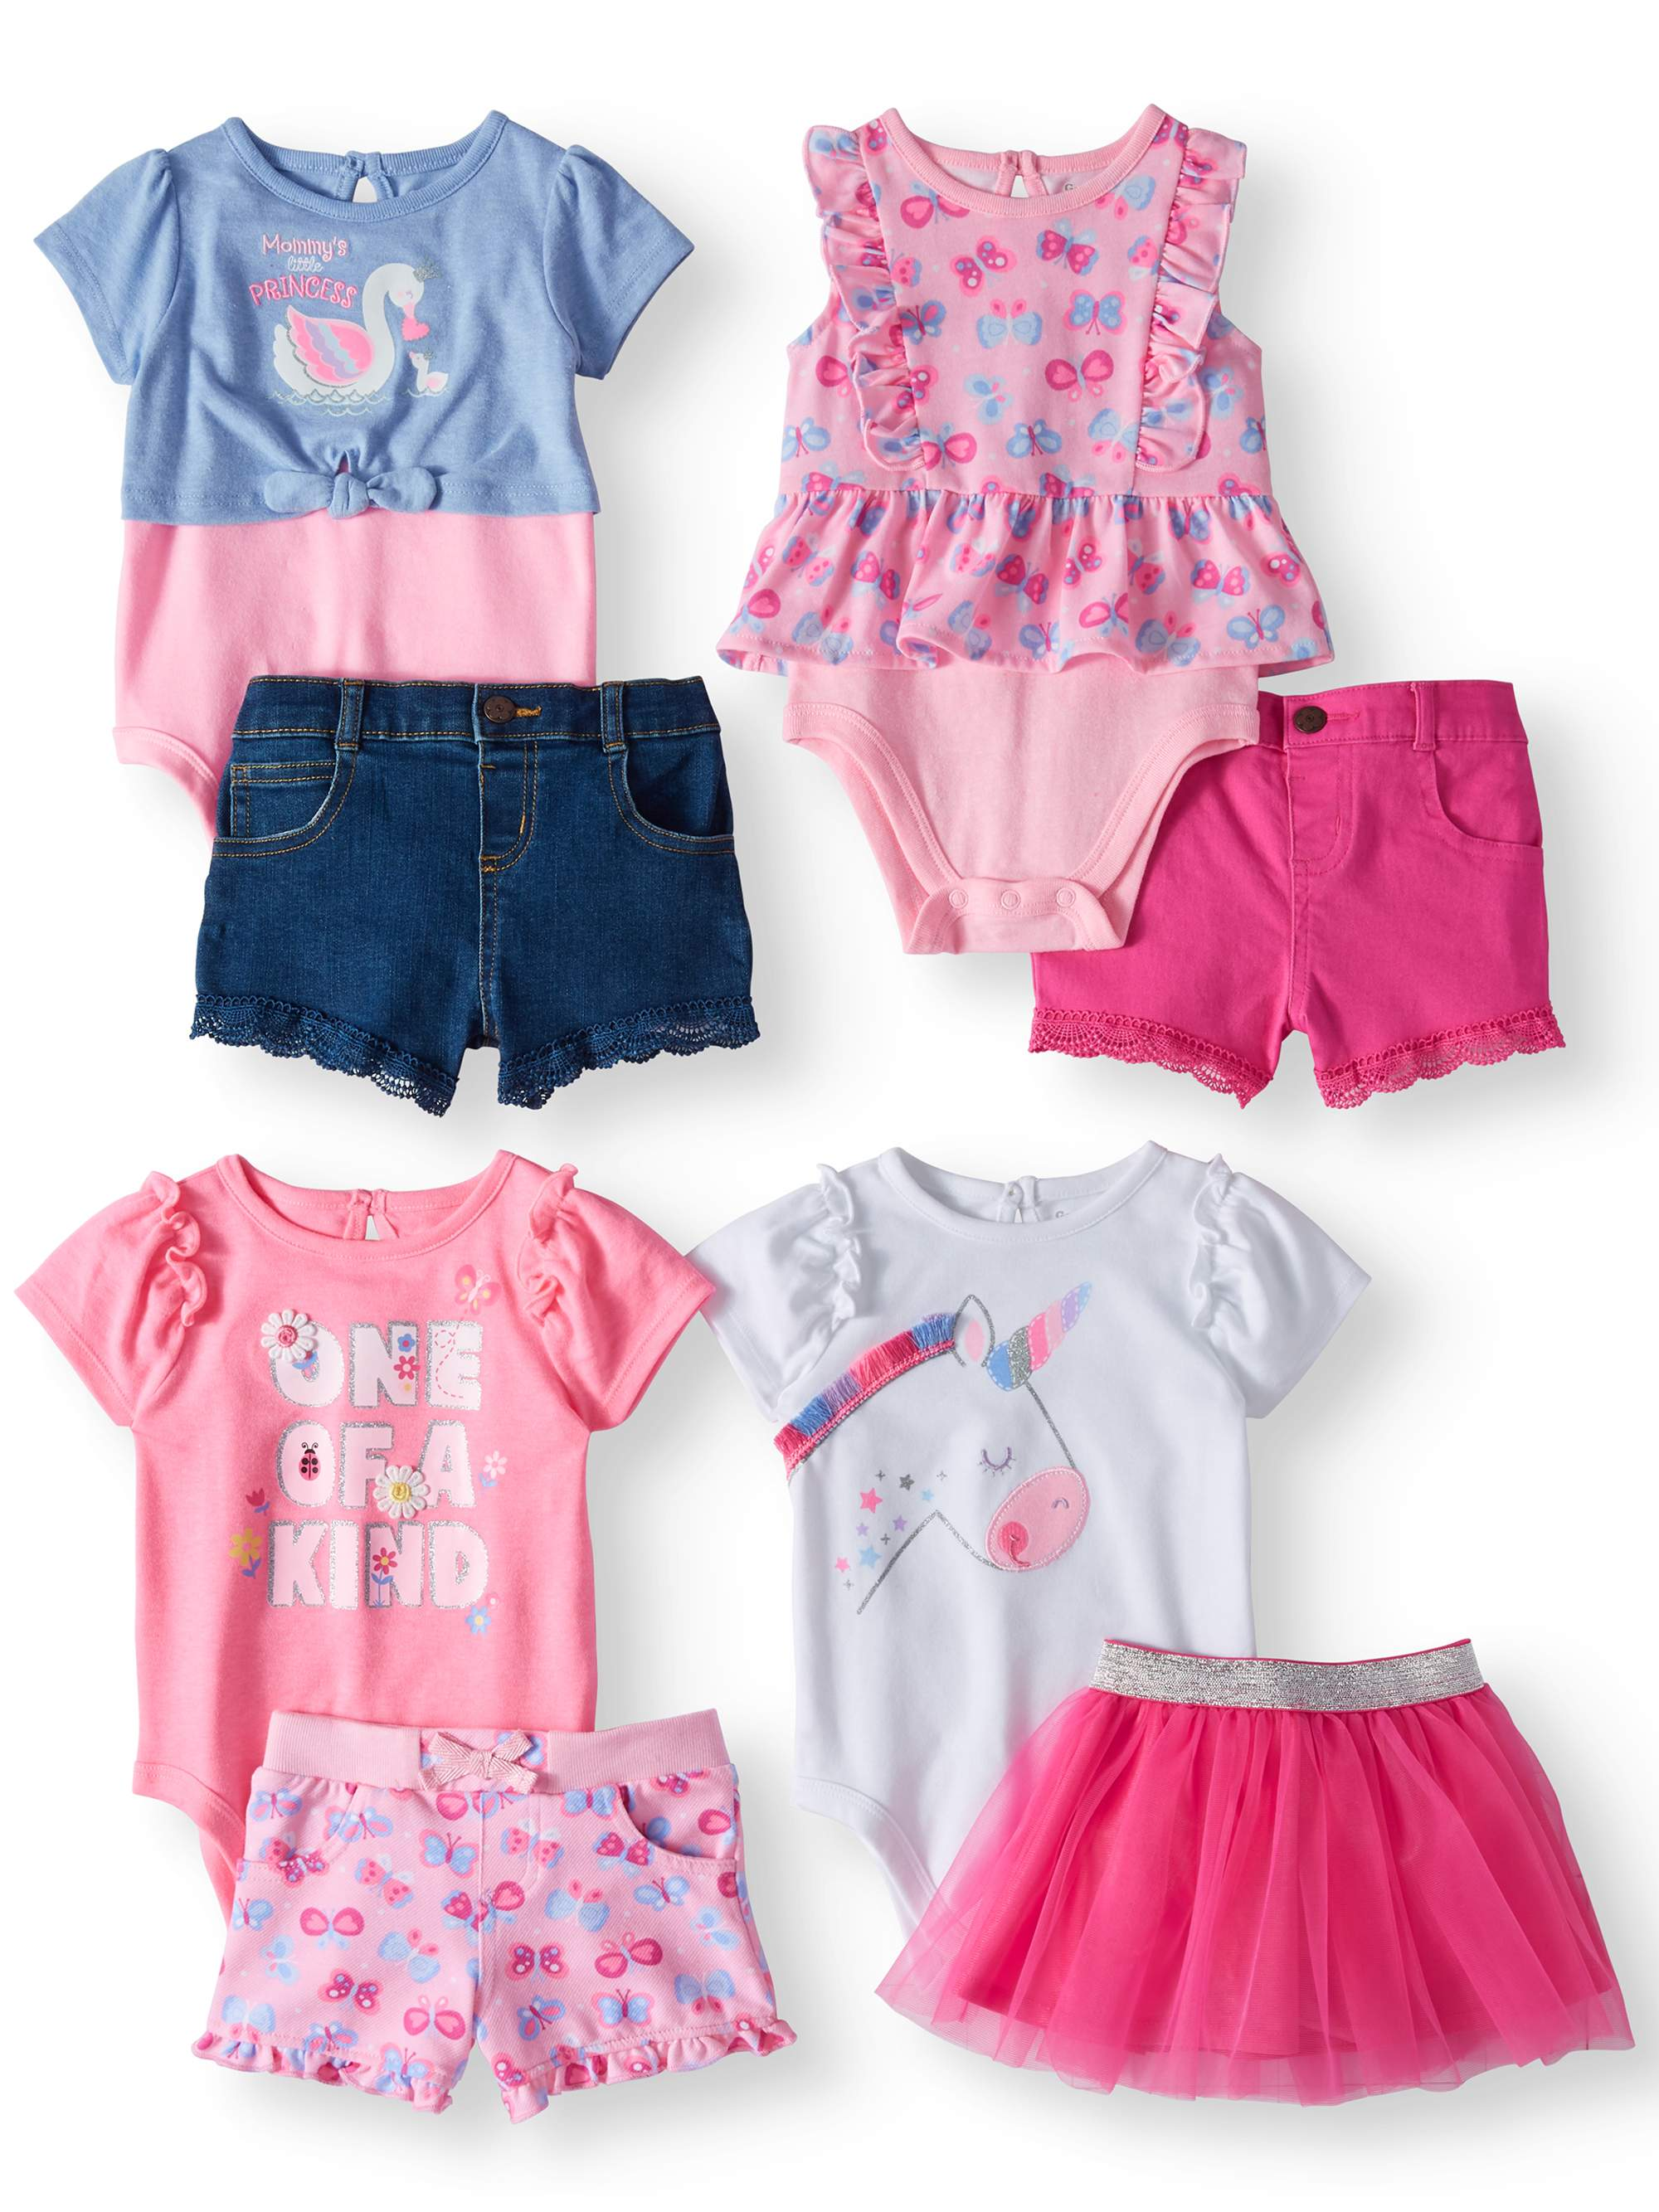 Baby Girls Outfit Sets , Walmart.com